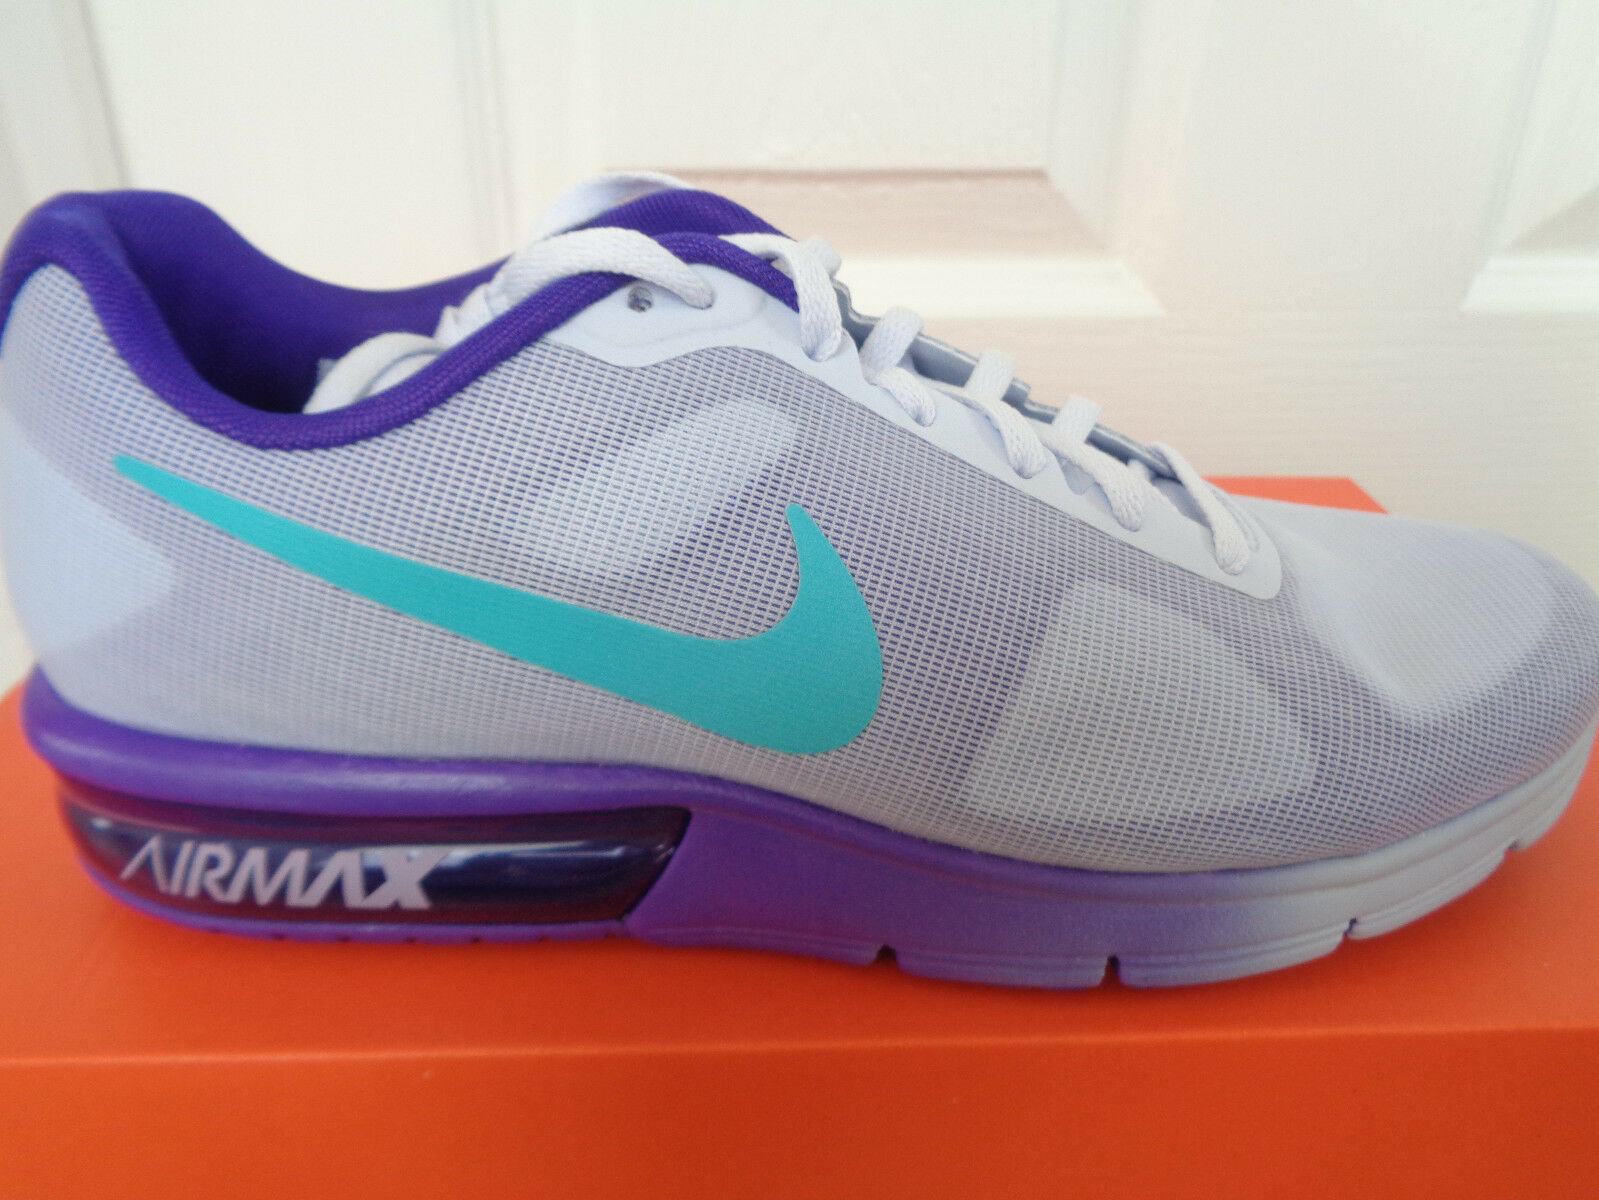 Nike Air Max Sequent uk trainers shoes 719916 504 uk Sequent 5 eu 38.5 us 7.5 NEW IN BOX 82d2dd